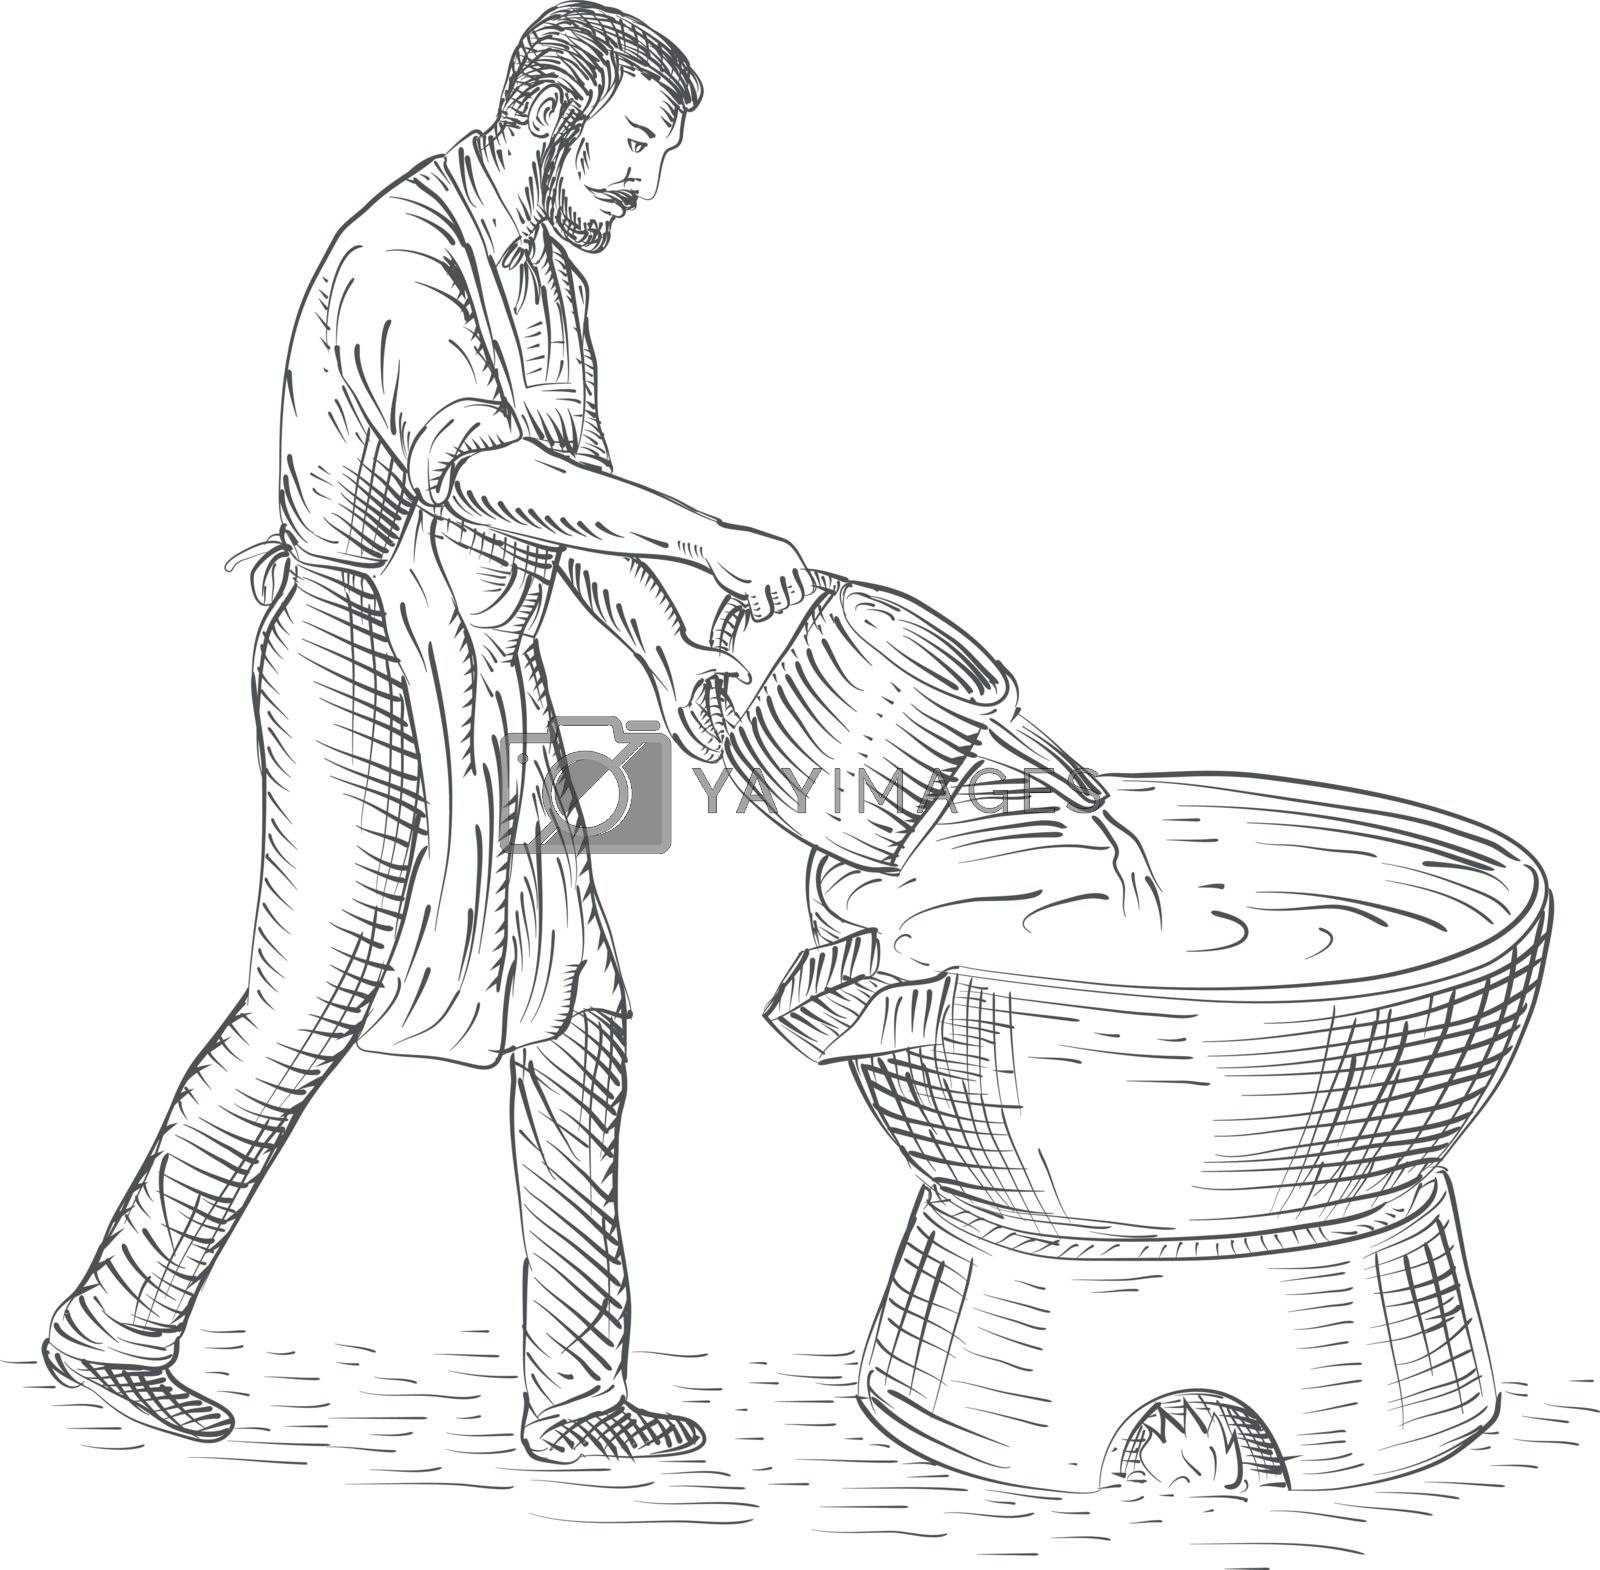 Drawing sketch style illustration of a 19th century vintage candlemaker or chandler pouring candle wax making candles on foundry viewed from side isolated background.